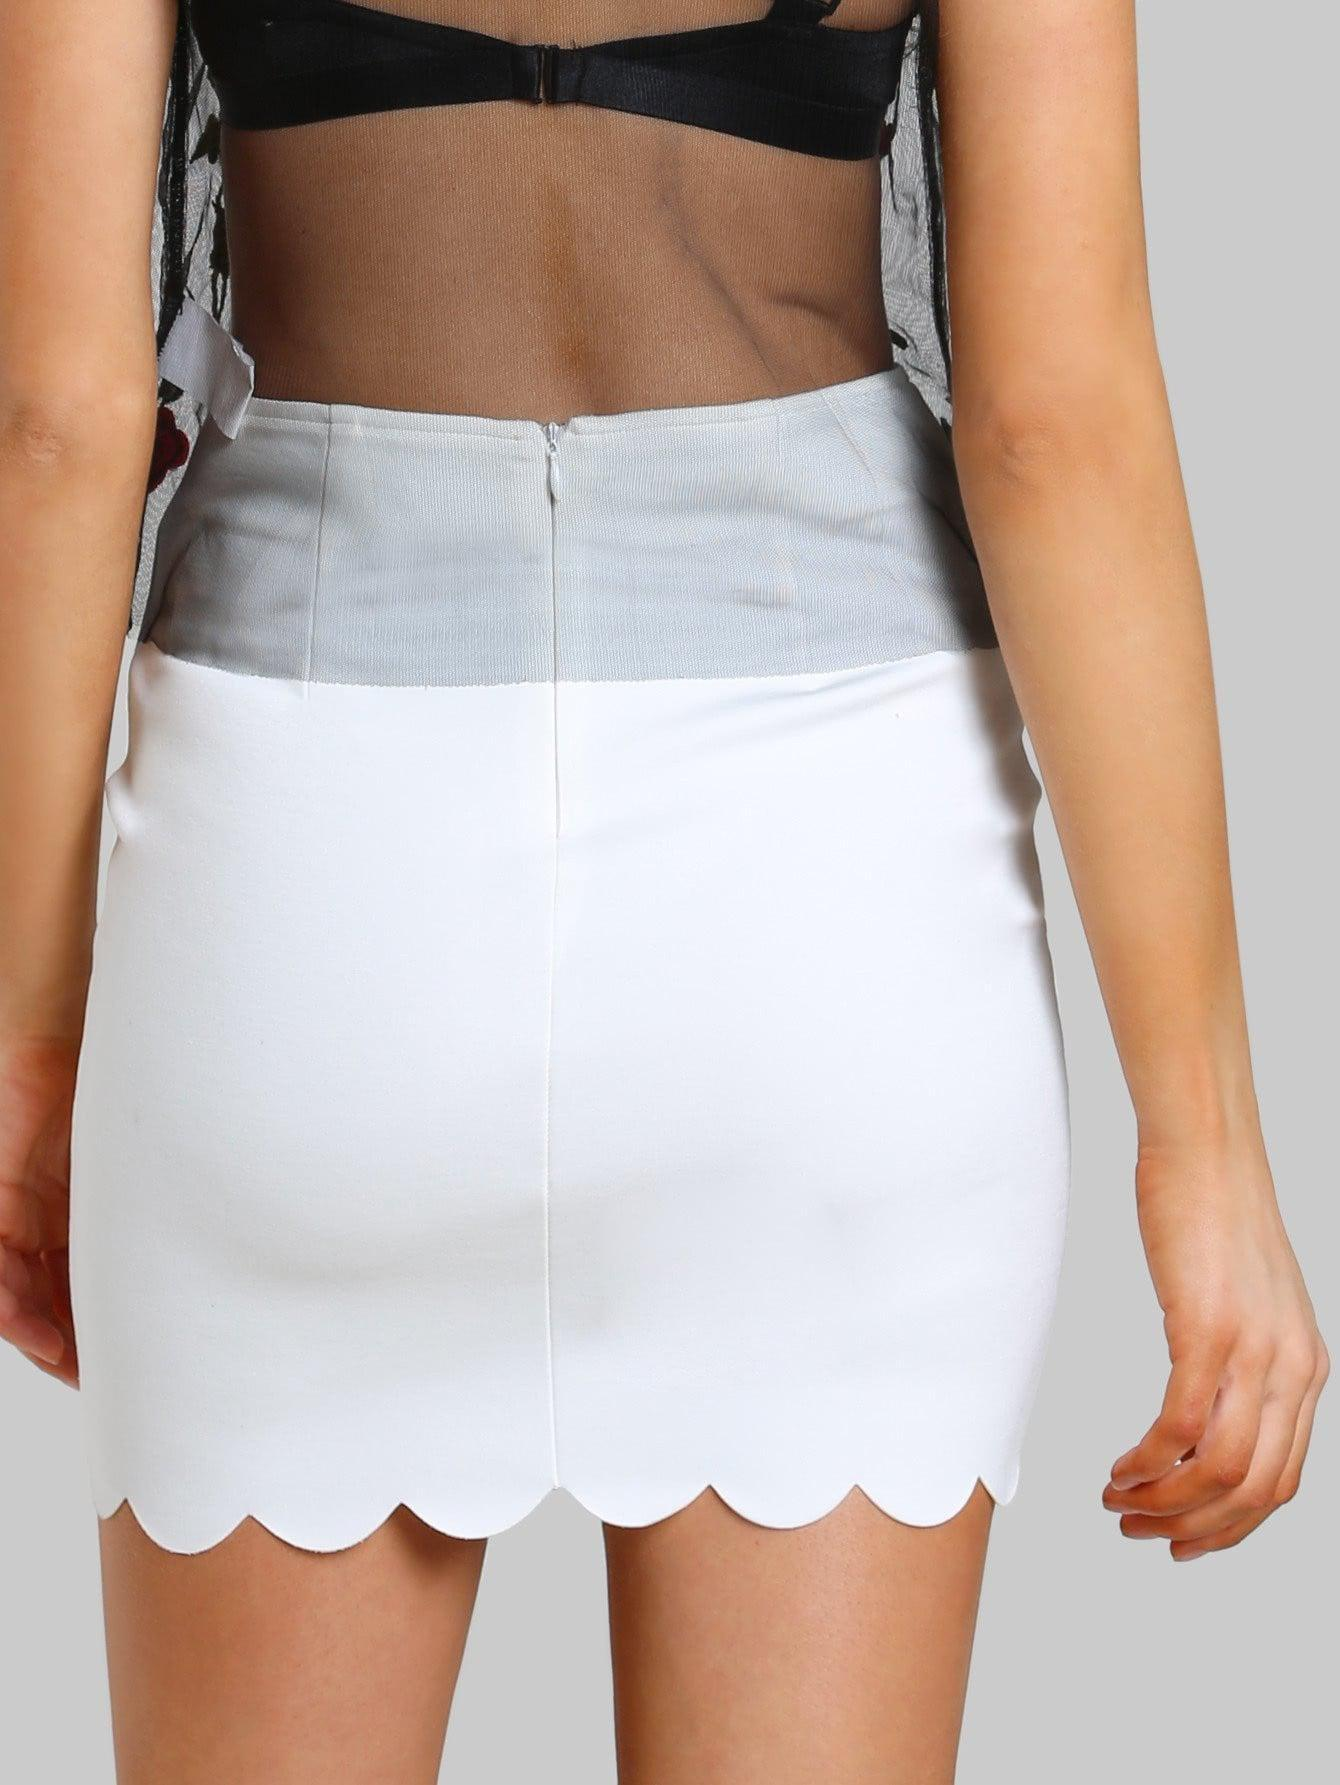 Scallop Edge Form Fitting Skirt - Skirts - Zooomberg - Zoomberg